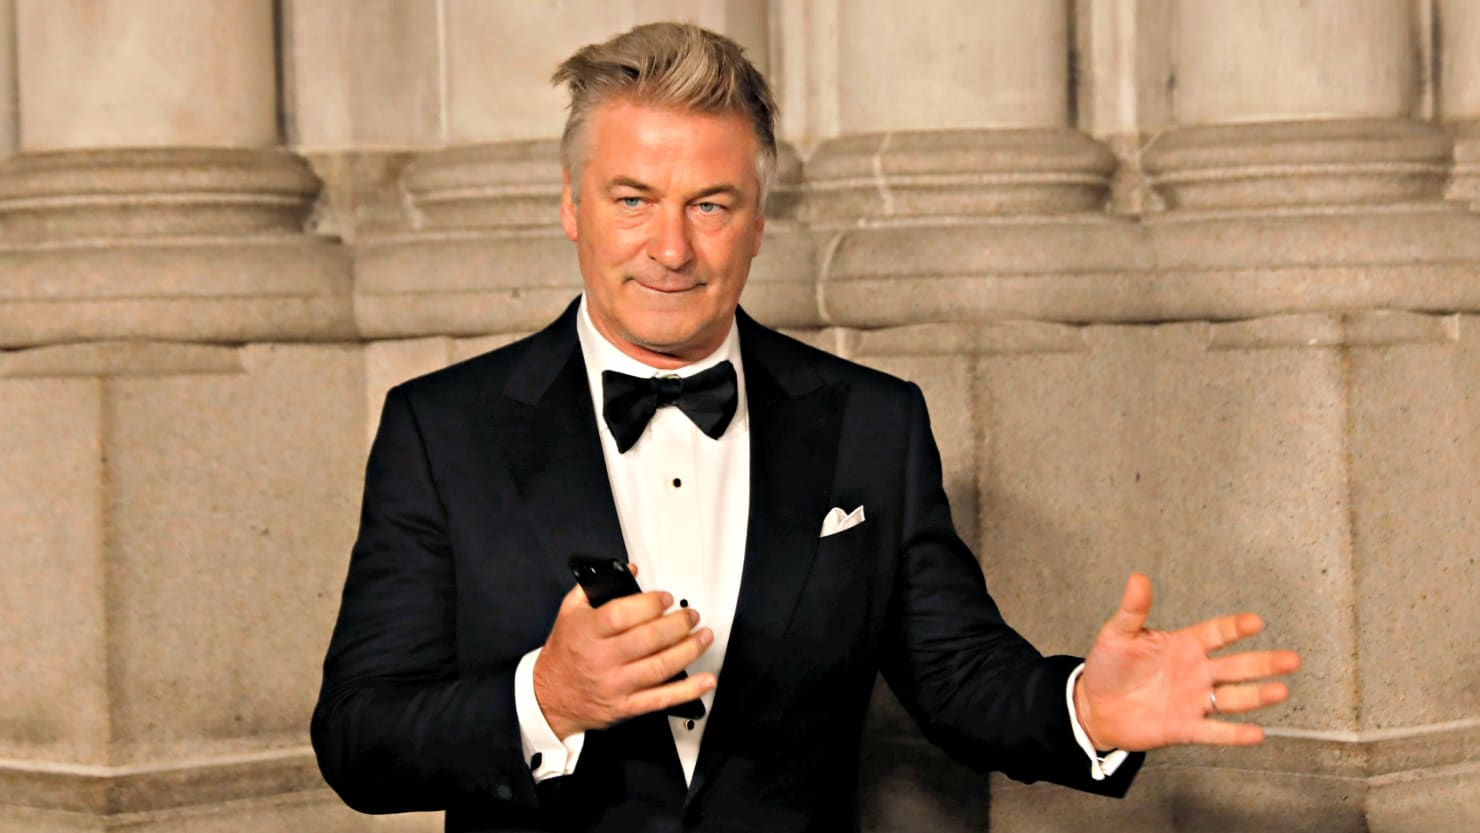 Alec Baldwin Arrested for Allegedly Punching Man Over Parking Space